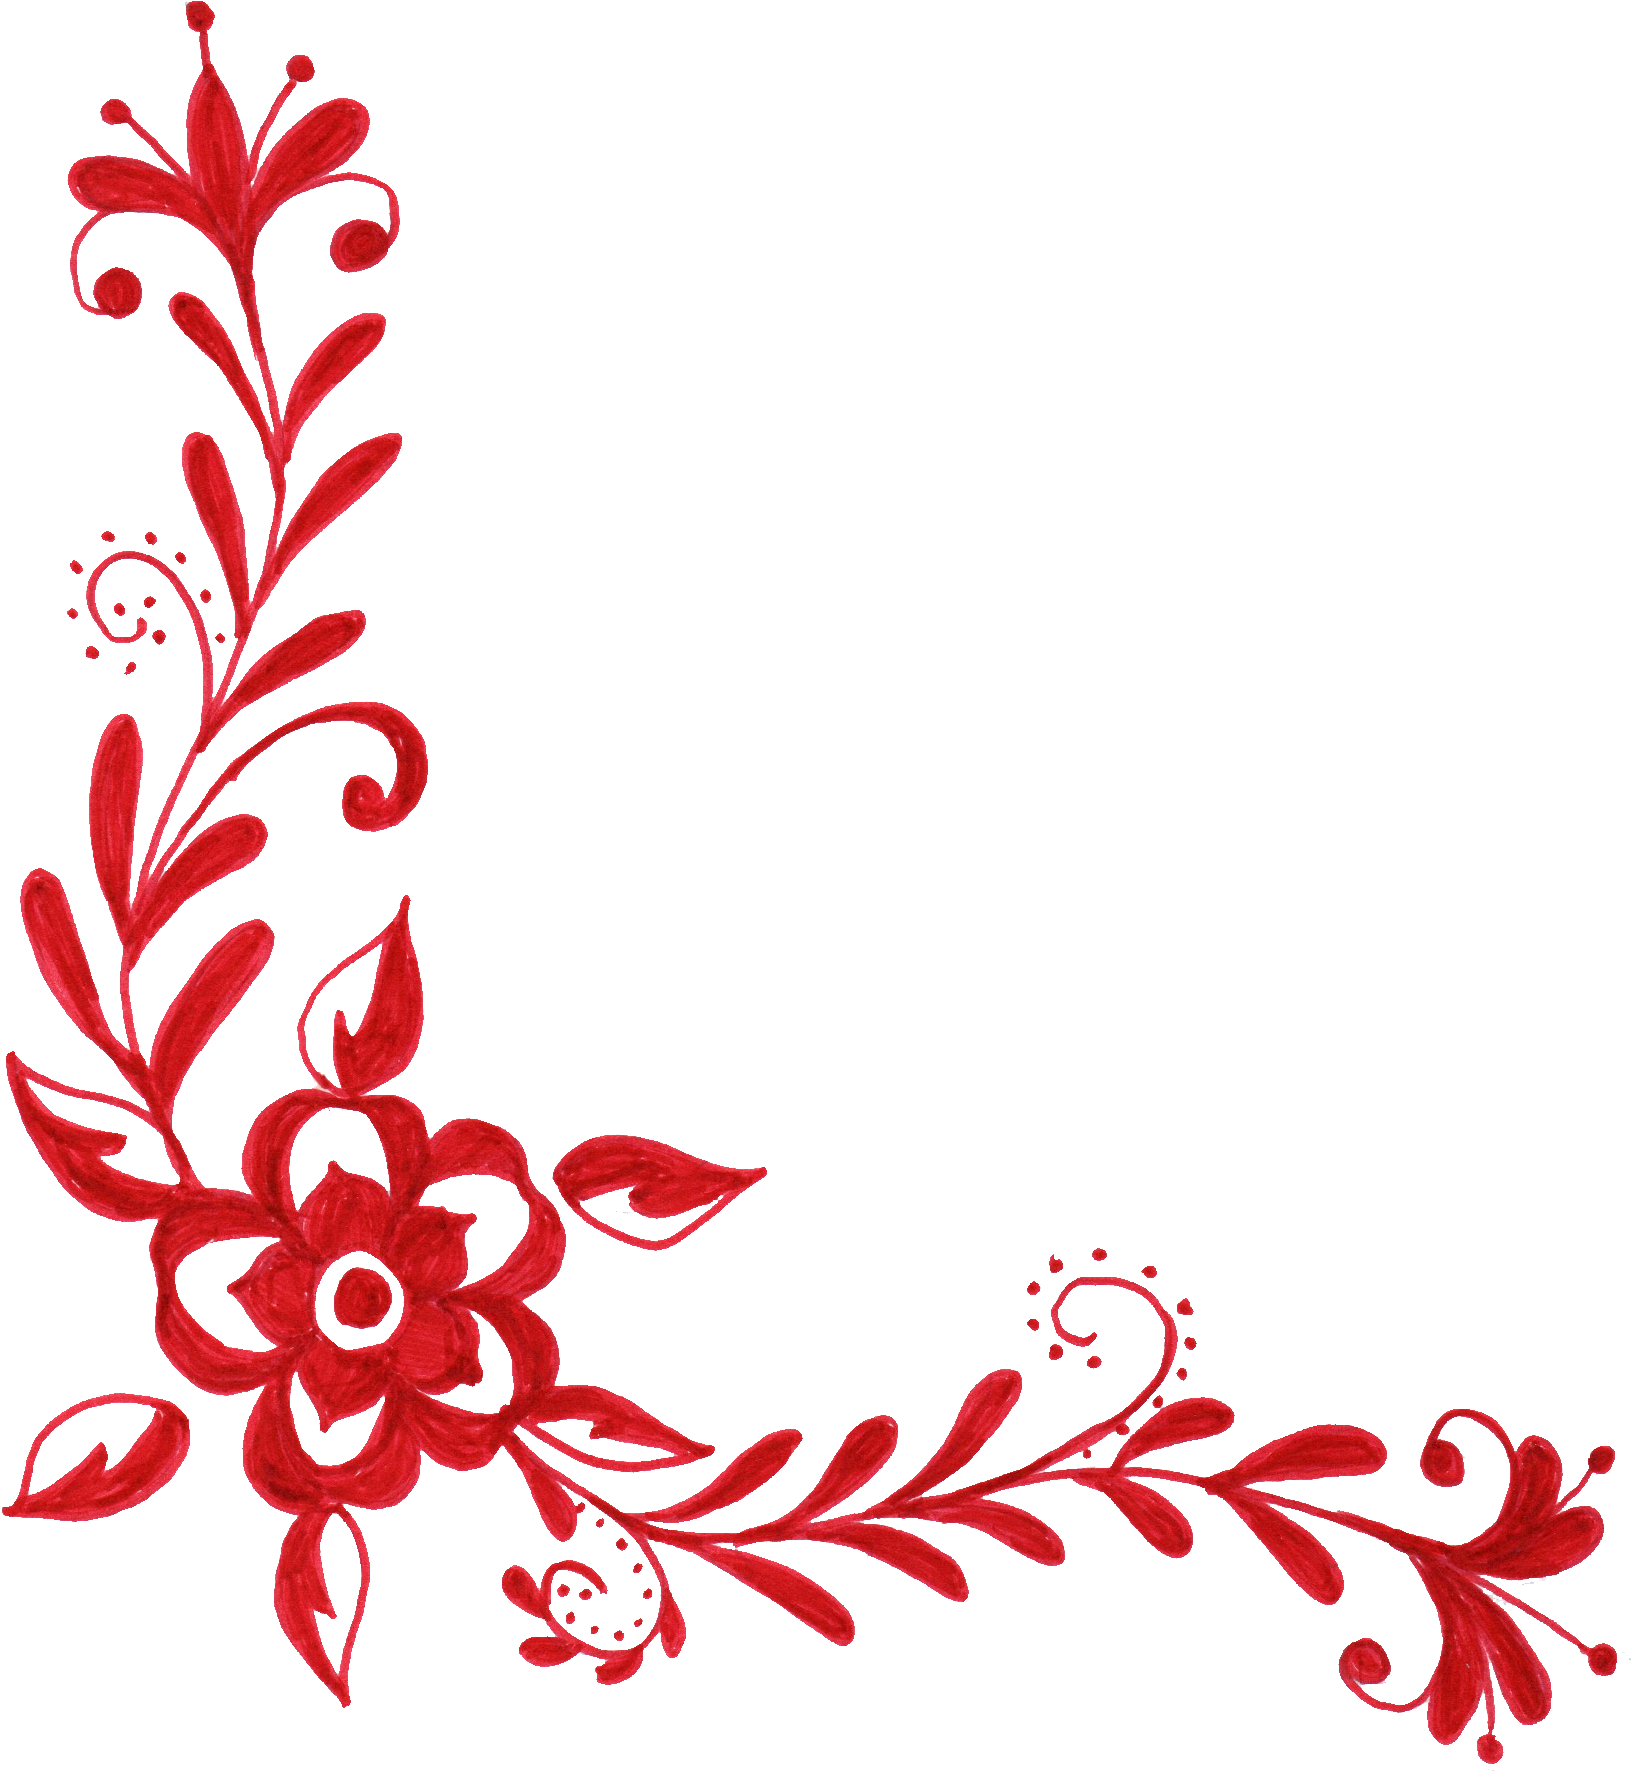 Ornaments clipart floral, Ornaments floral Transparent FREE for download on ...